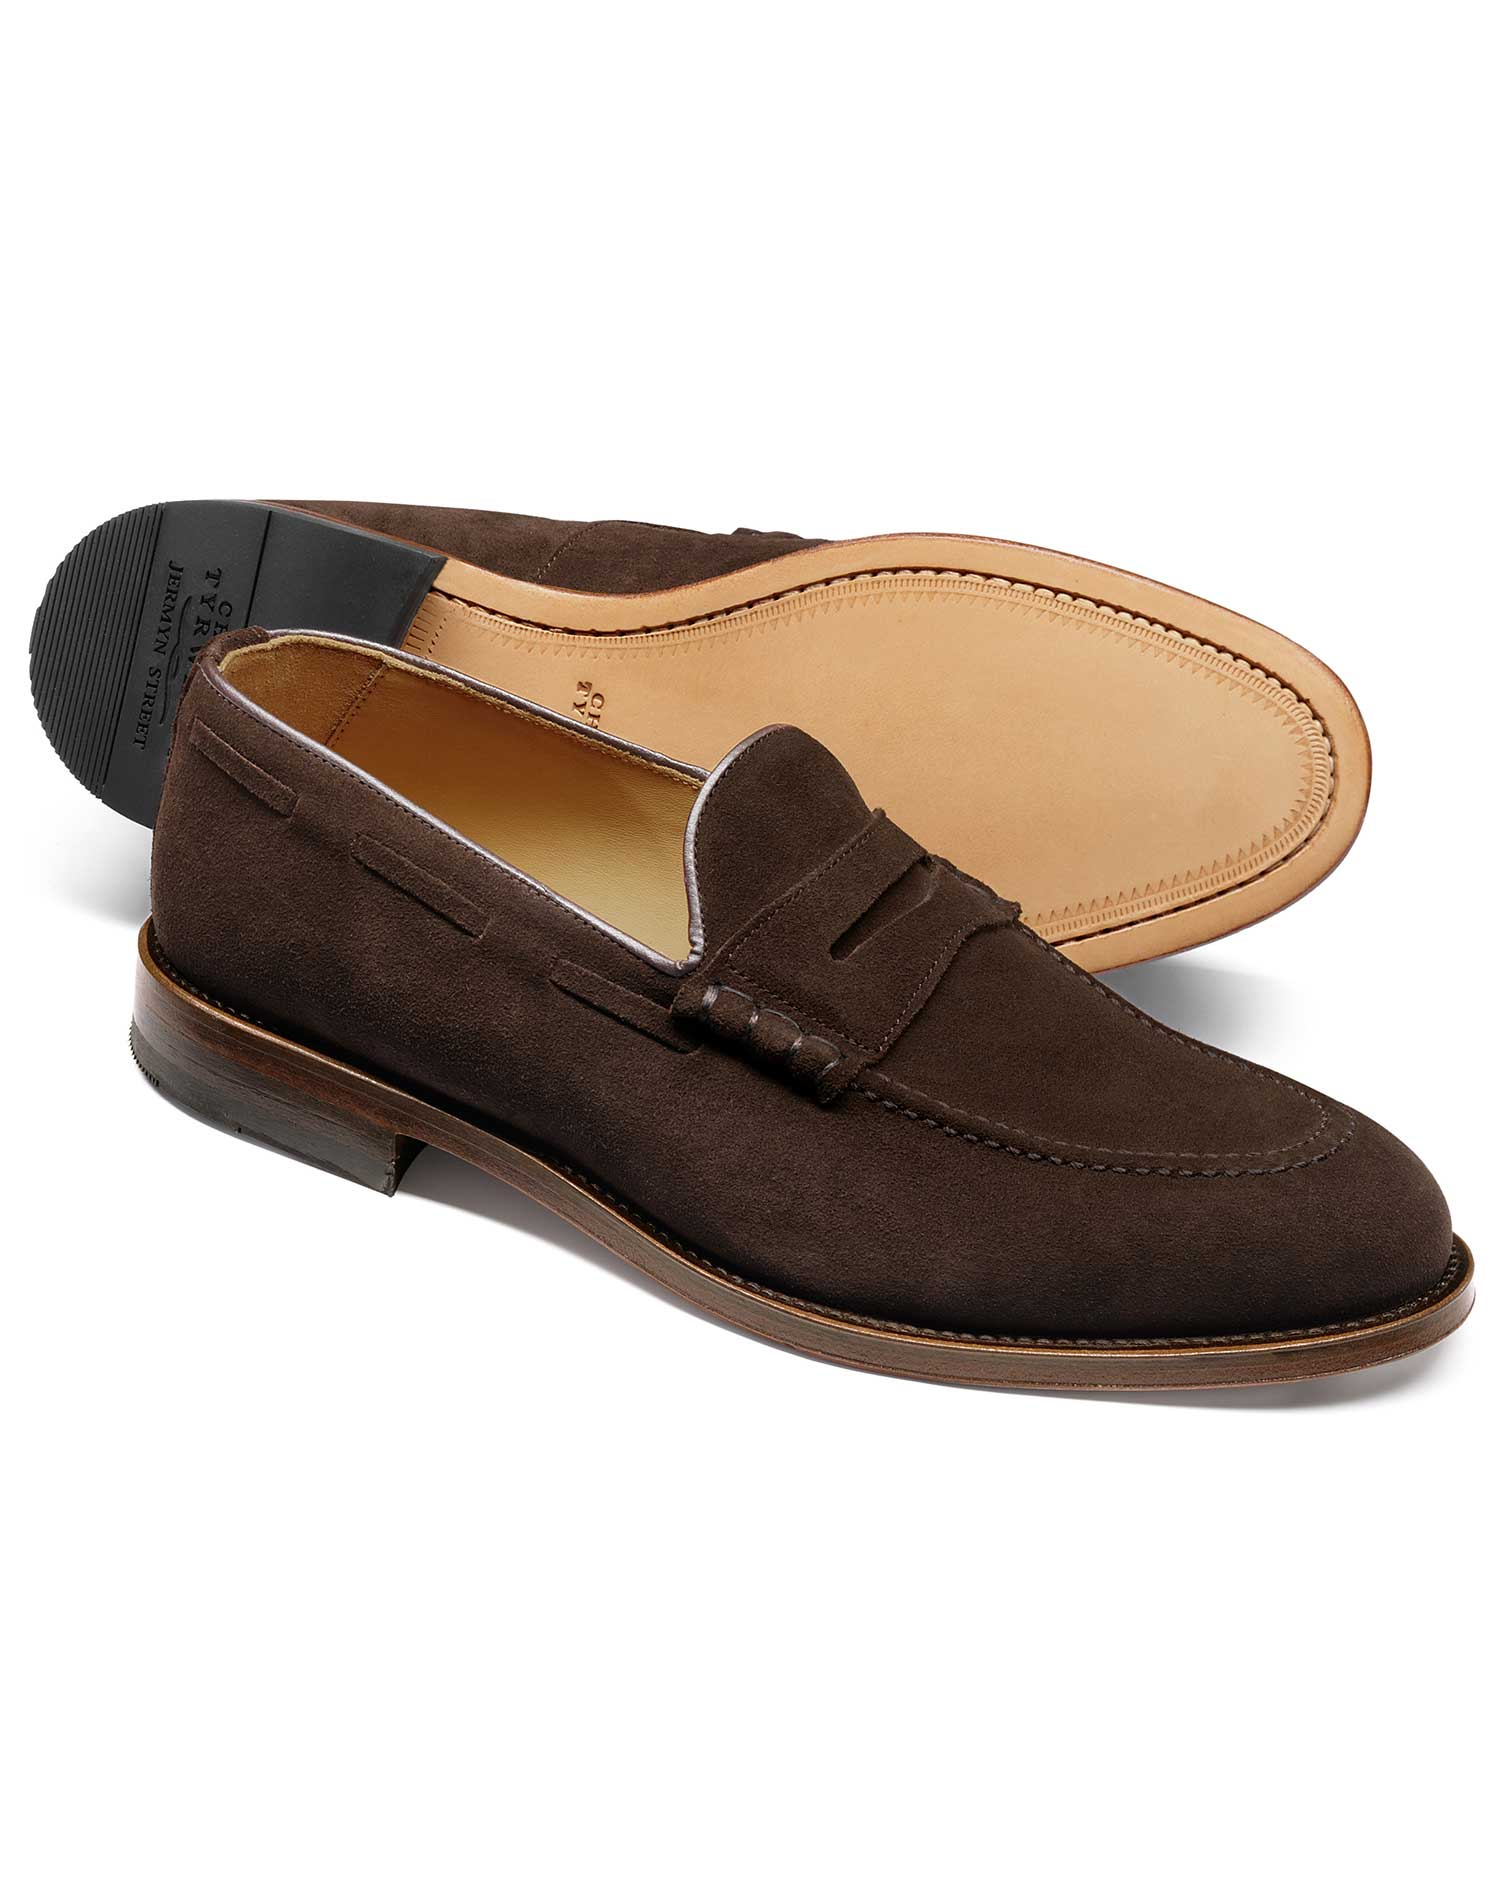 Chocolate Suede Penny Loafer Size 12 R by Charles Tyrwhitt